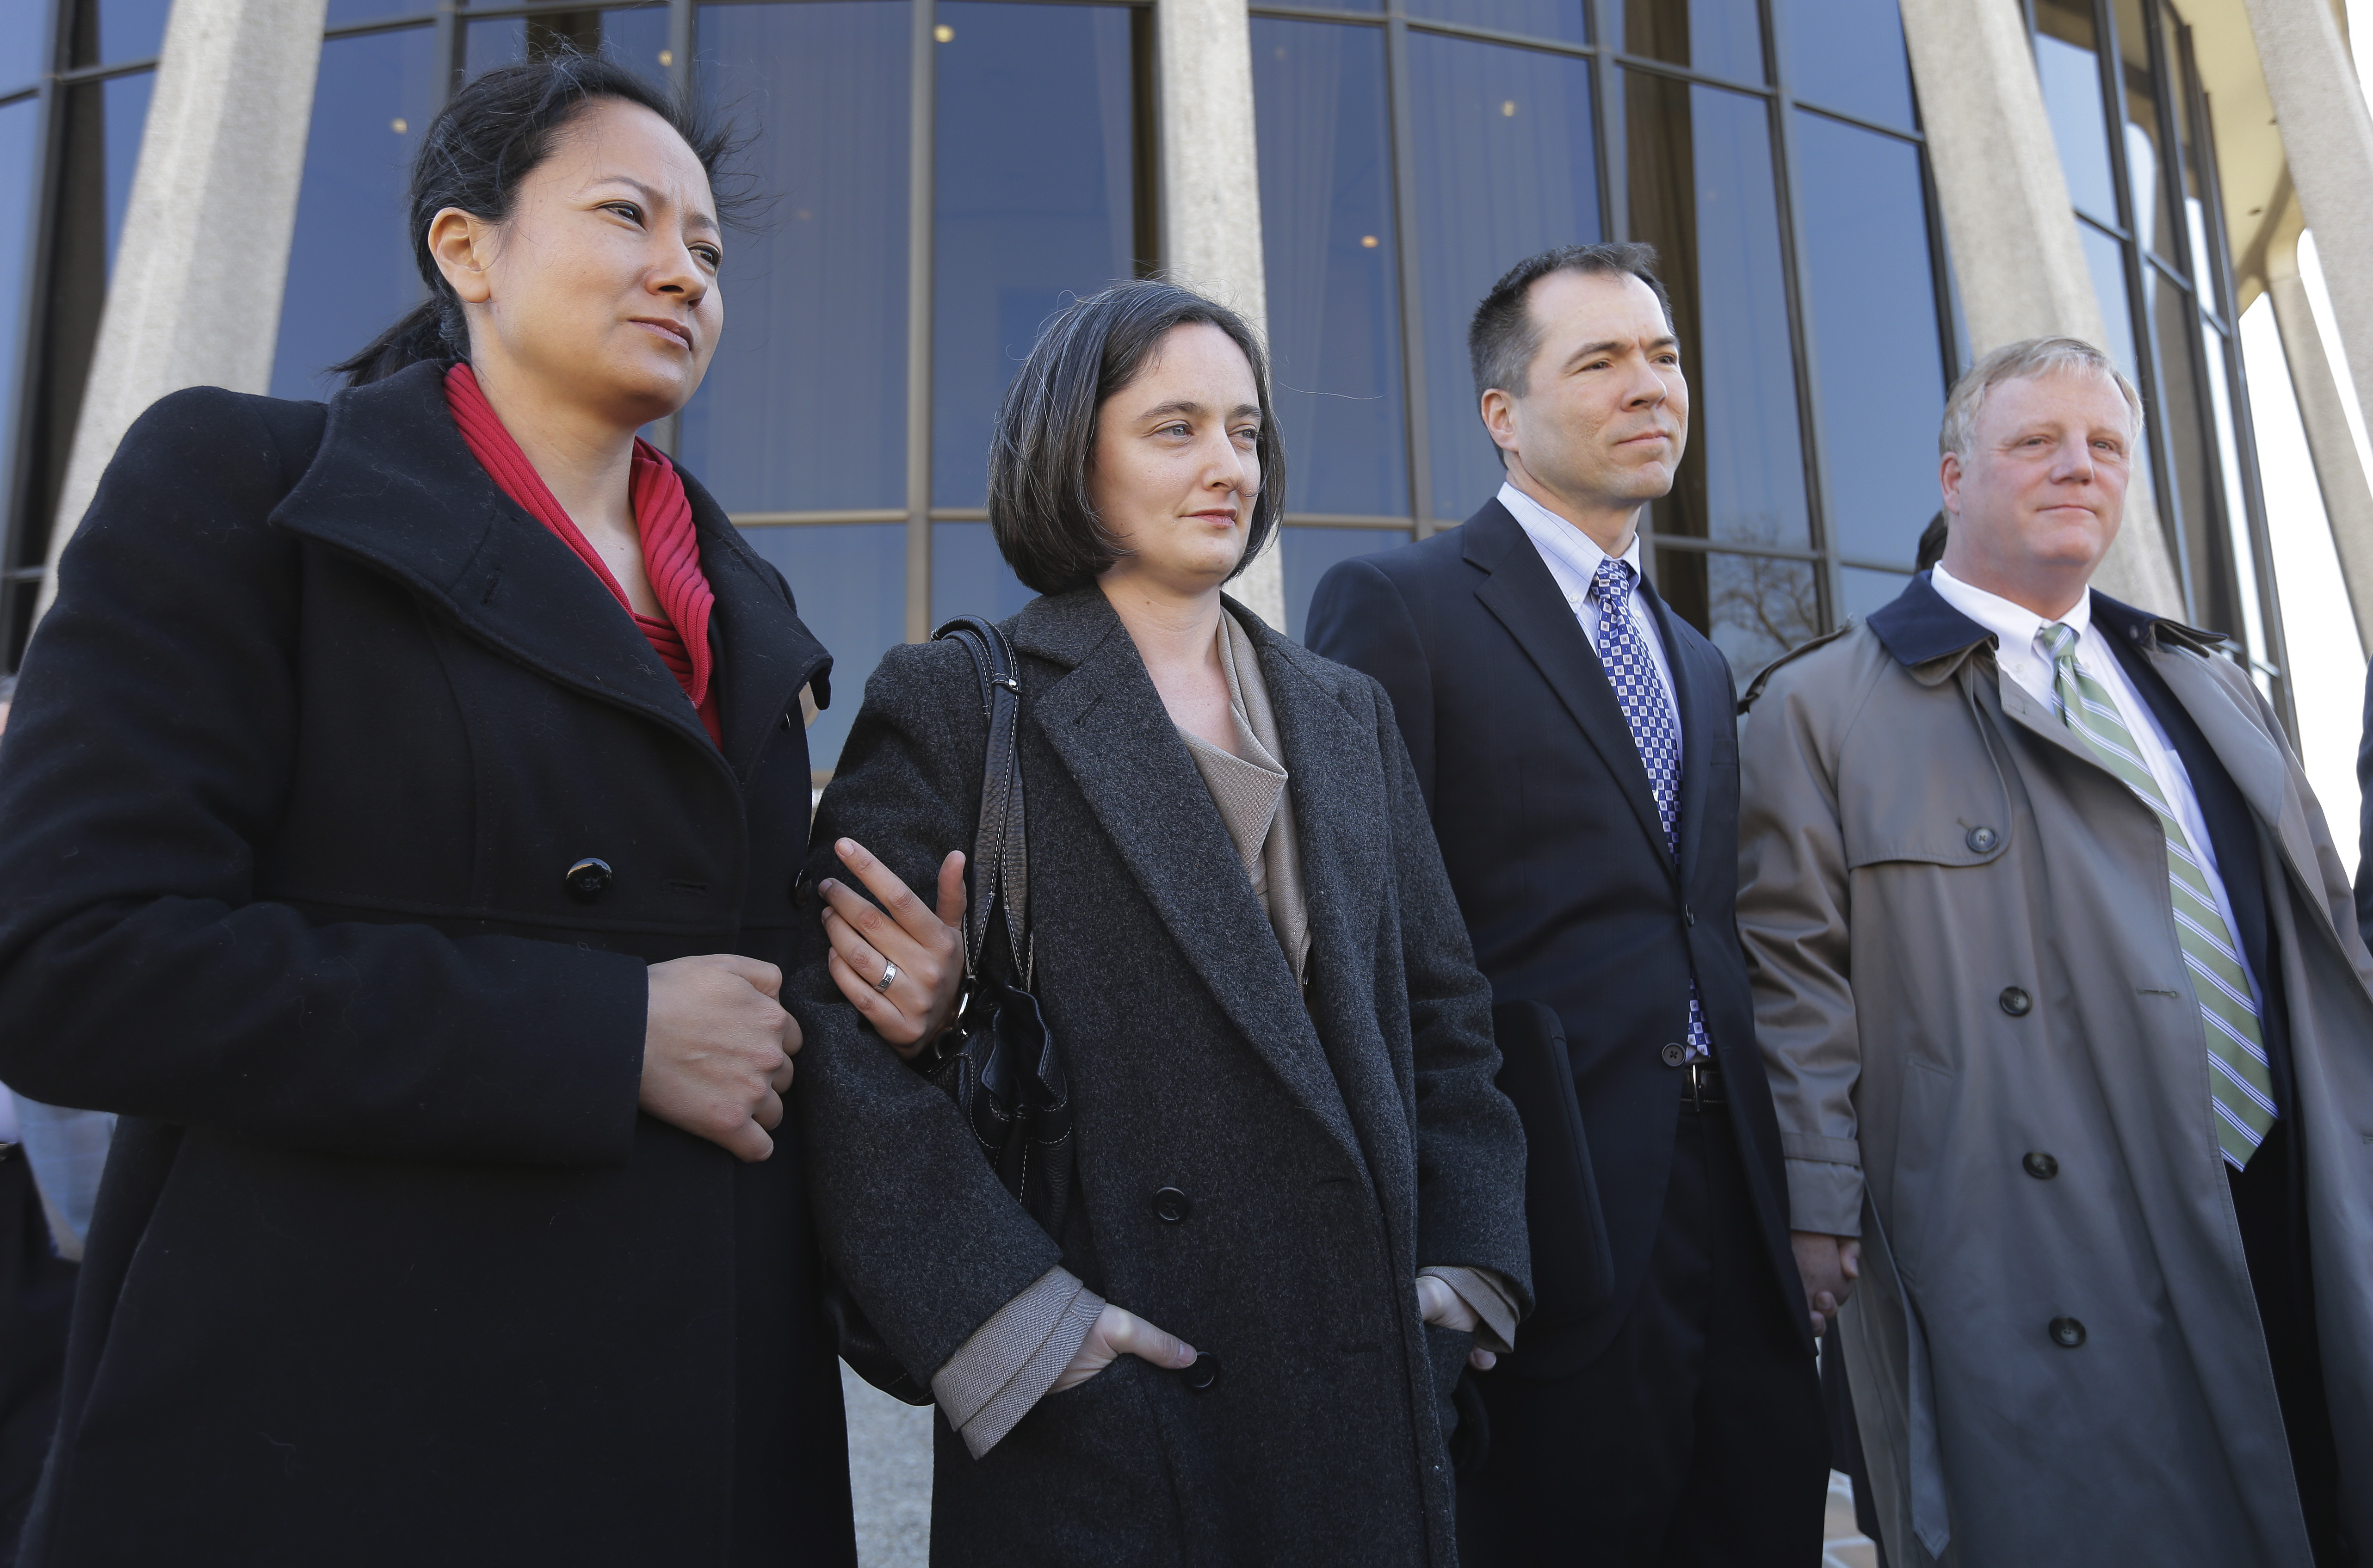 Same-sex couples Cleopatra De Leon, left, and partner, Nicole Dimetman, second from left, and Victor Holmes and partner Mark Phariss, right, talk with the media after as they leave the U.S. Federal Courthouse, in San Antonio on  Feb. 12, 2014.